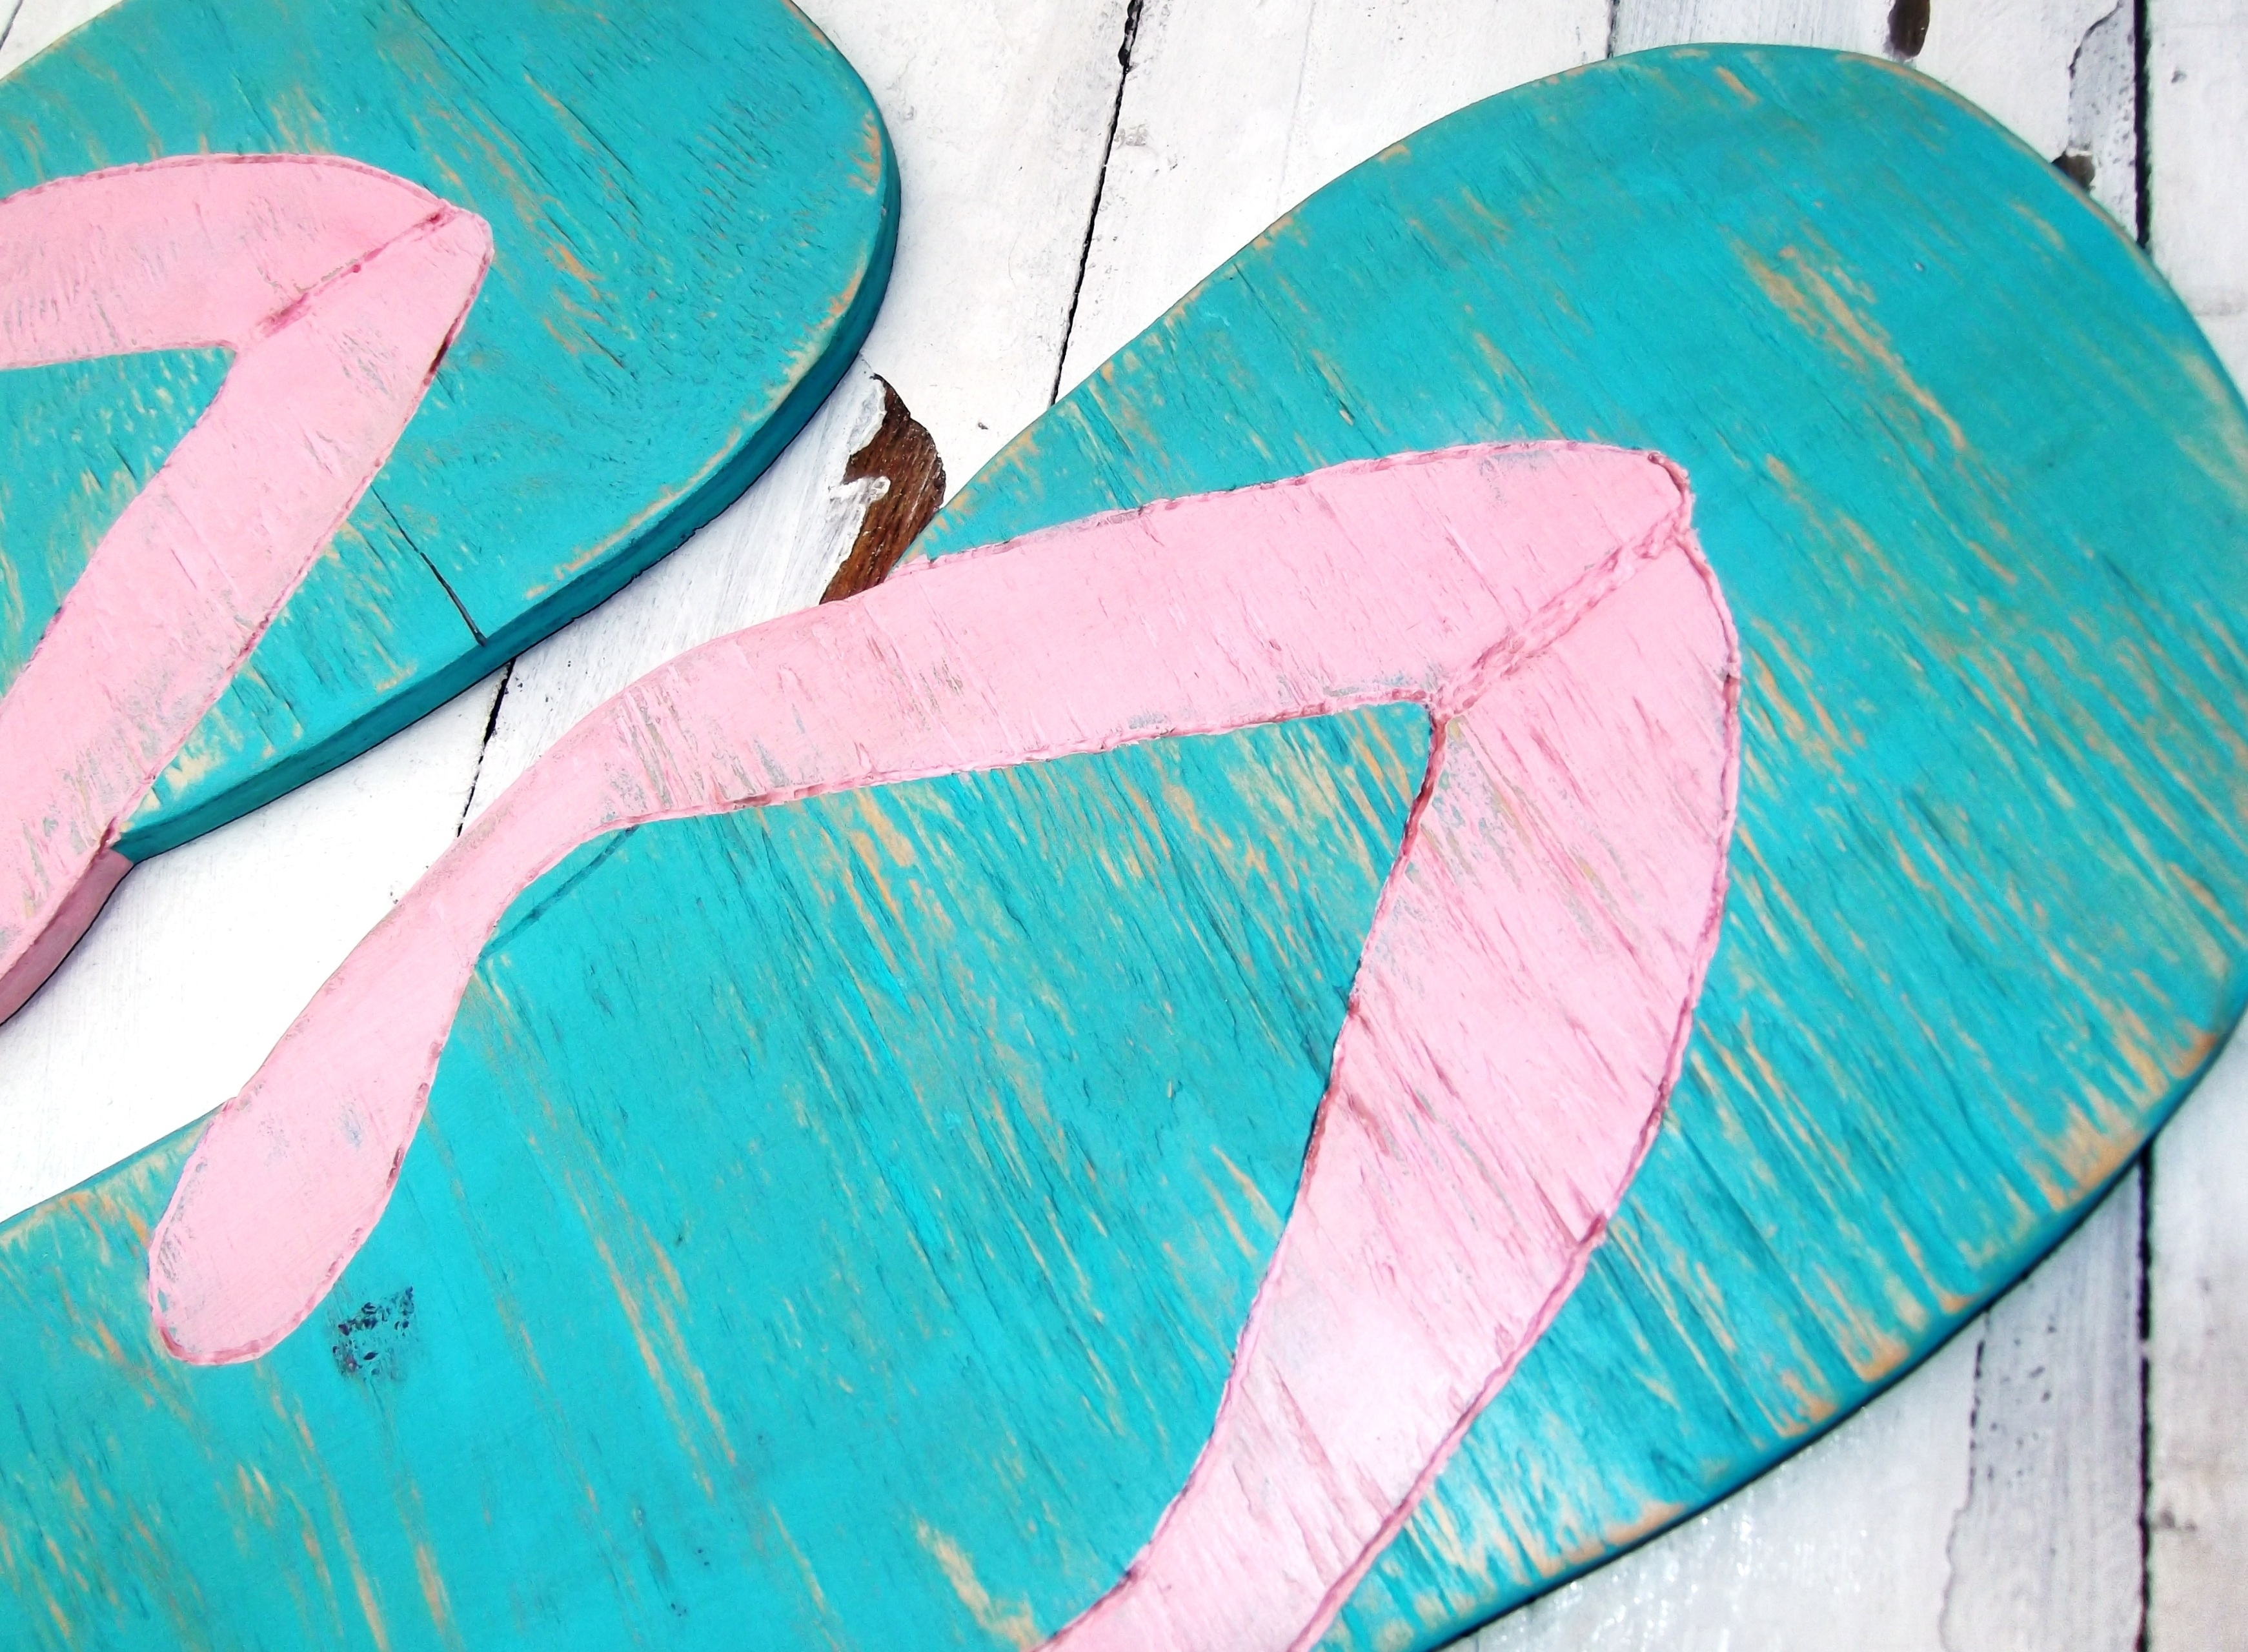 Huge Flip Flops Beach House Decoration, Wedding Decor Supersized Within Most Popular Flip Flop Wall Art (Gallery 2 of 15)